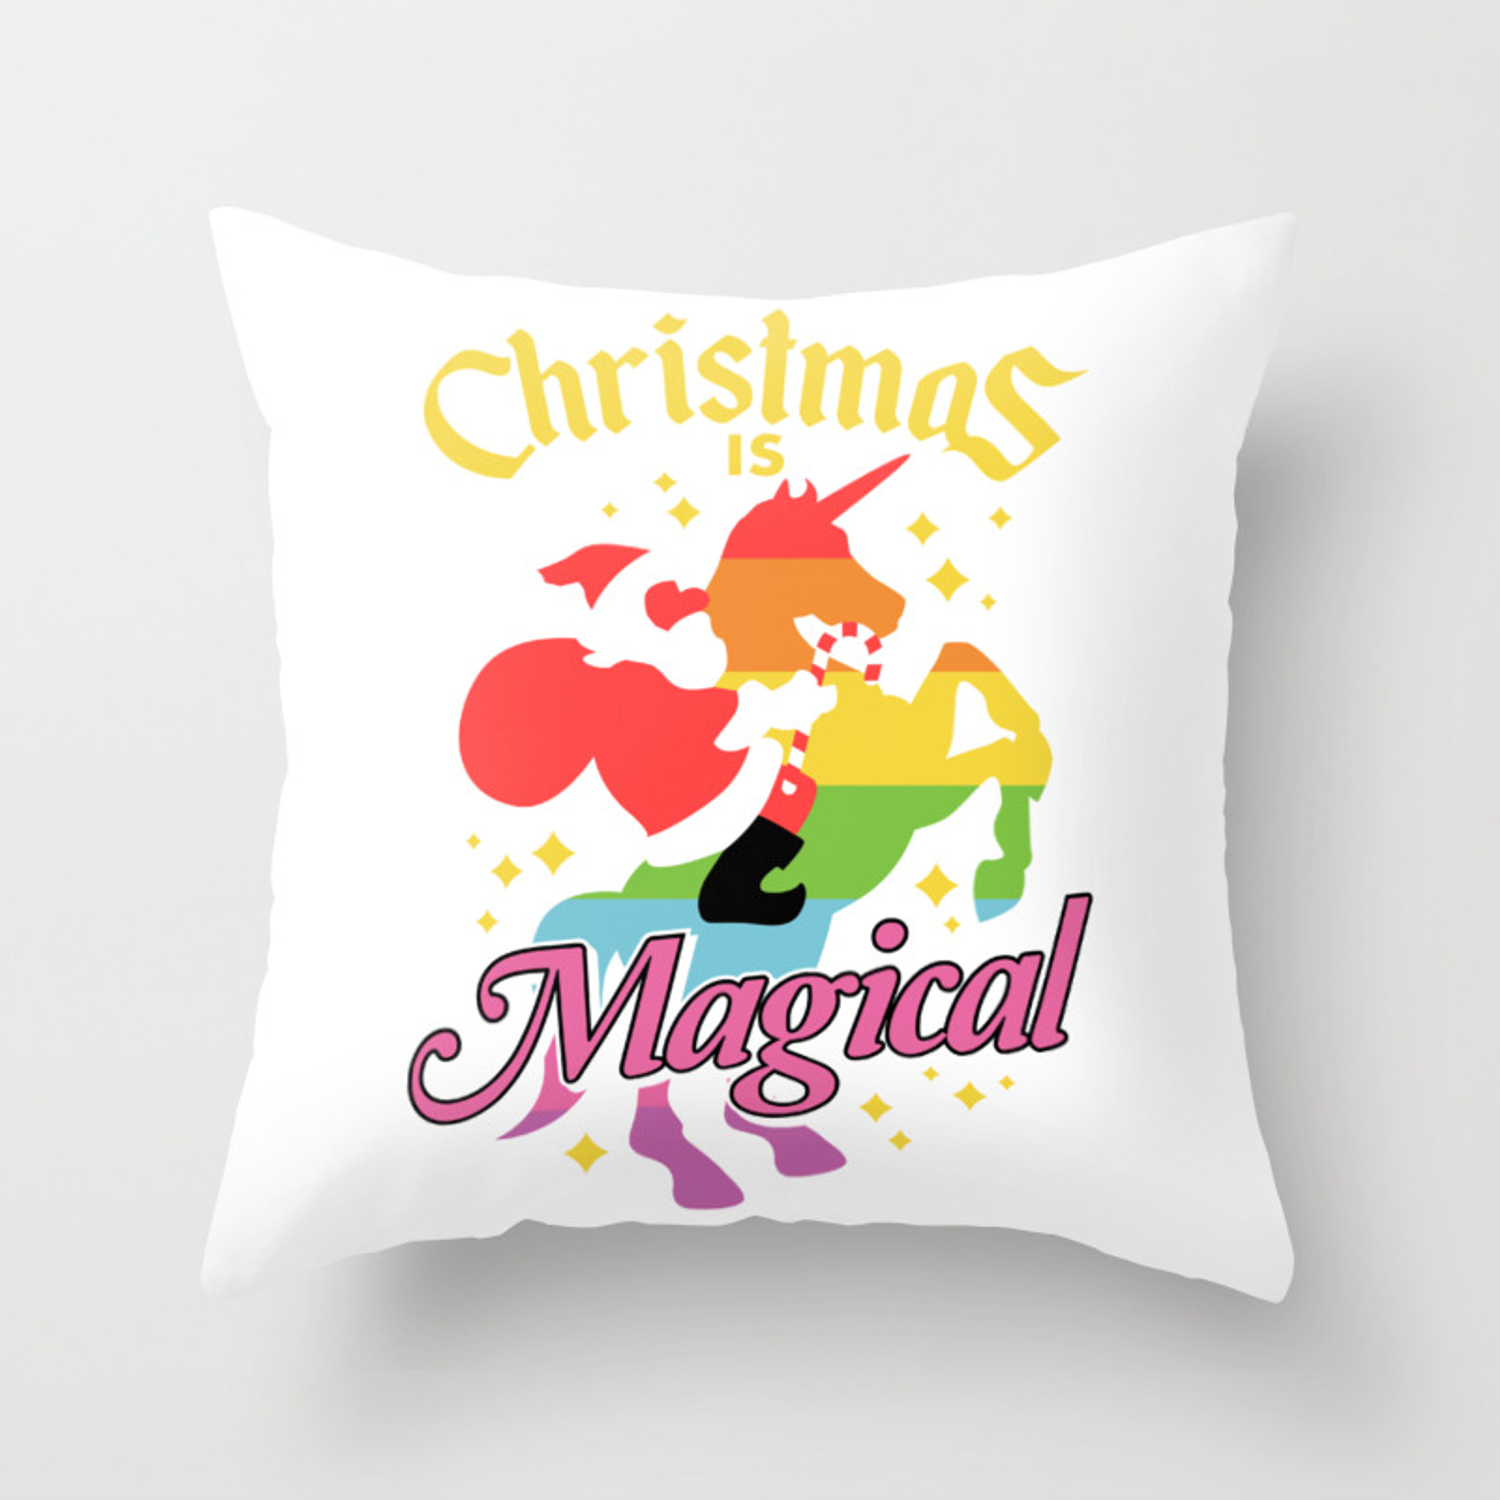 Picture of: Christmas Is Magical Santa Claus Riding Unicorn Funny Holiday Throw Pillow By Sonyadehart Society6